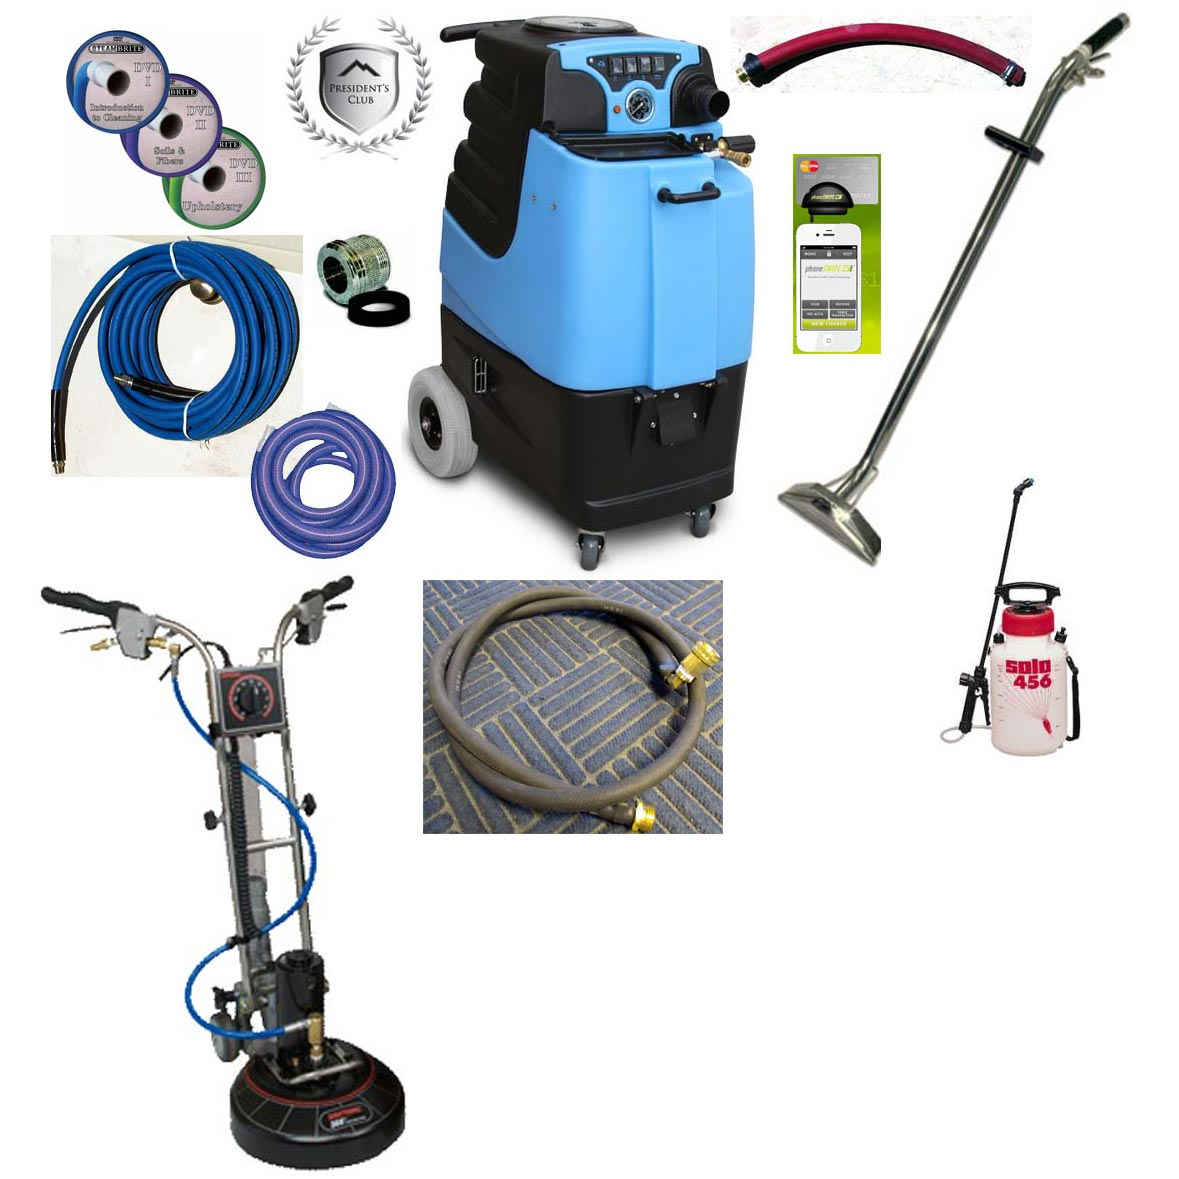 Rotovac 360i + Mytee LTD5LX 15gal 500psi Dual 3 Stage Vacs Auto Fill Auto Dump Carpet Upholstery Extractor Basic Starter Package 20180915